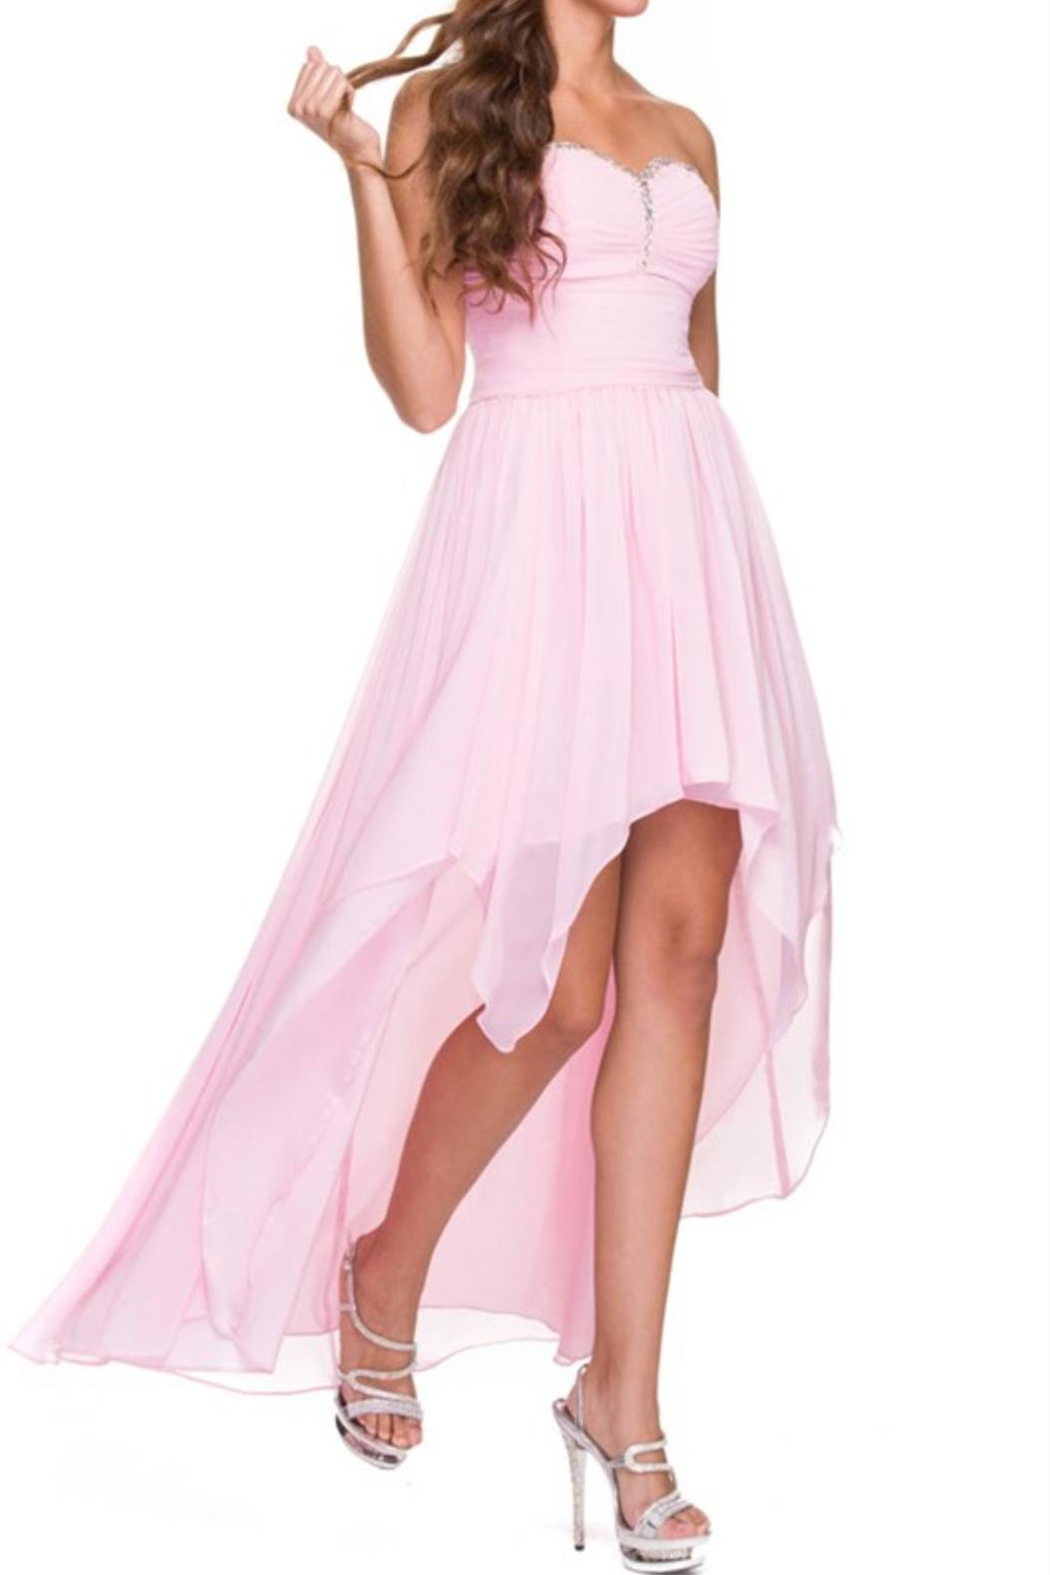 NOX A N A B E L High Low Prom-Dress - Front Cropped Image